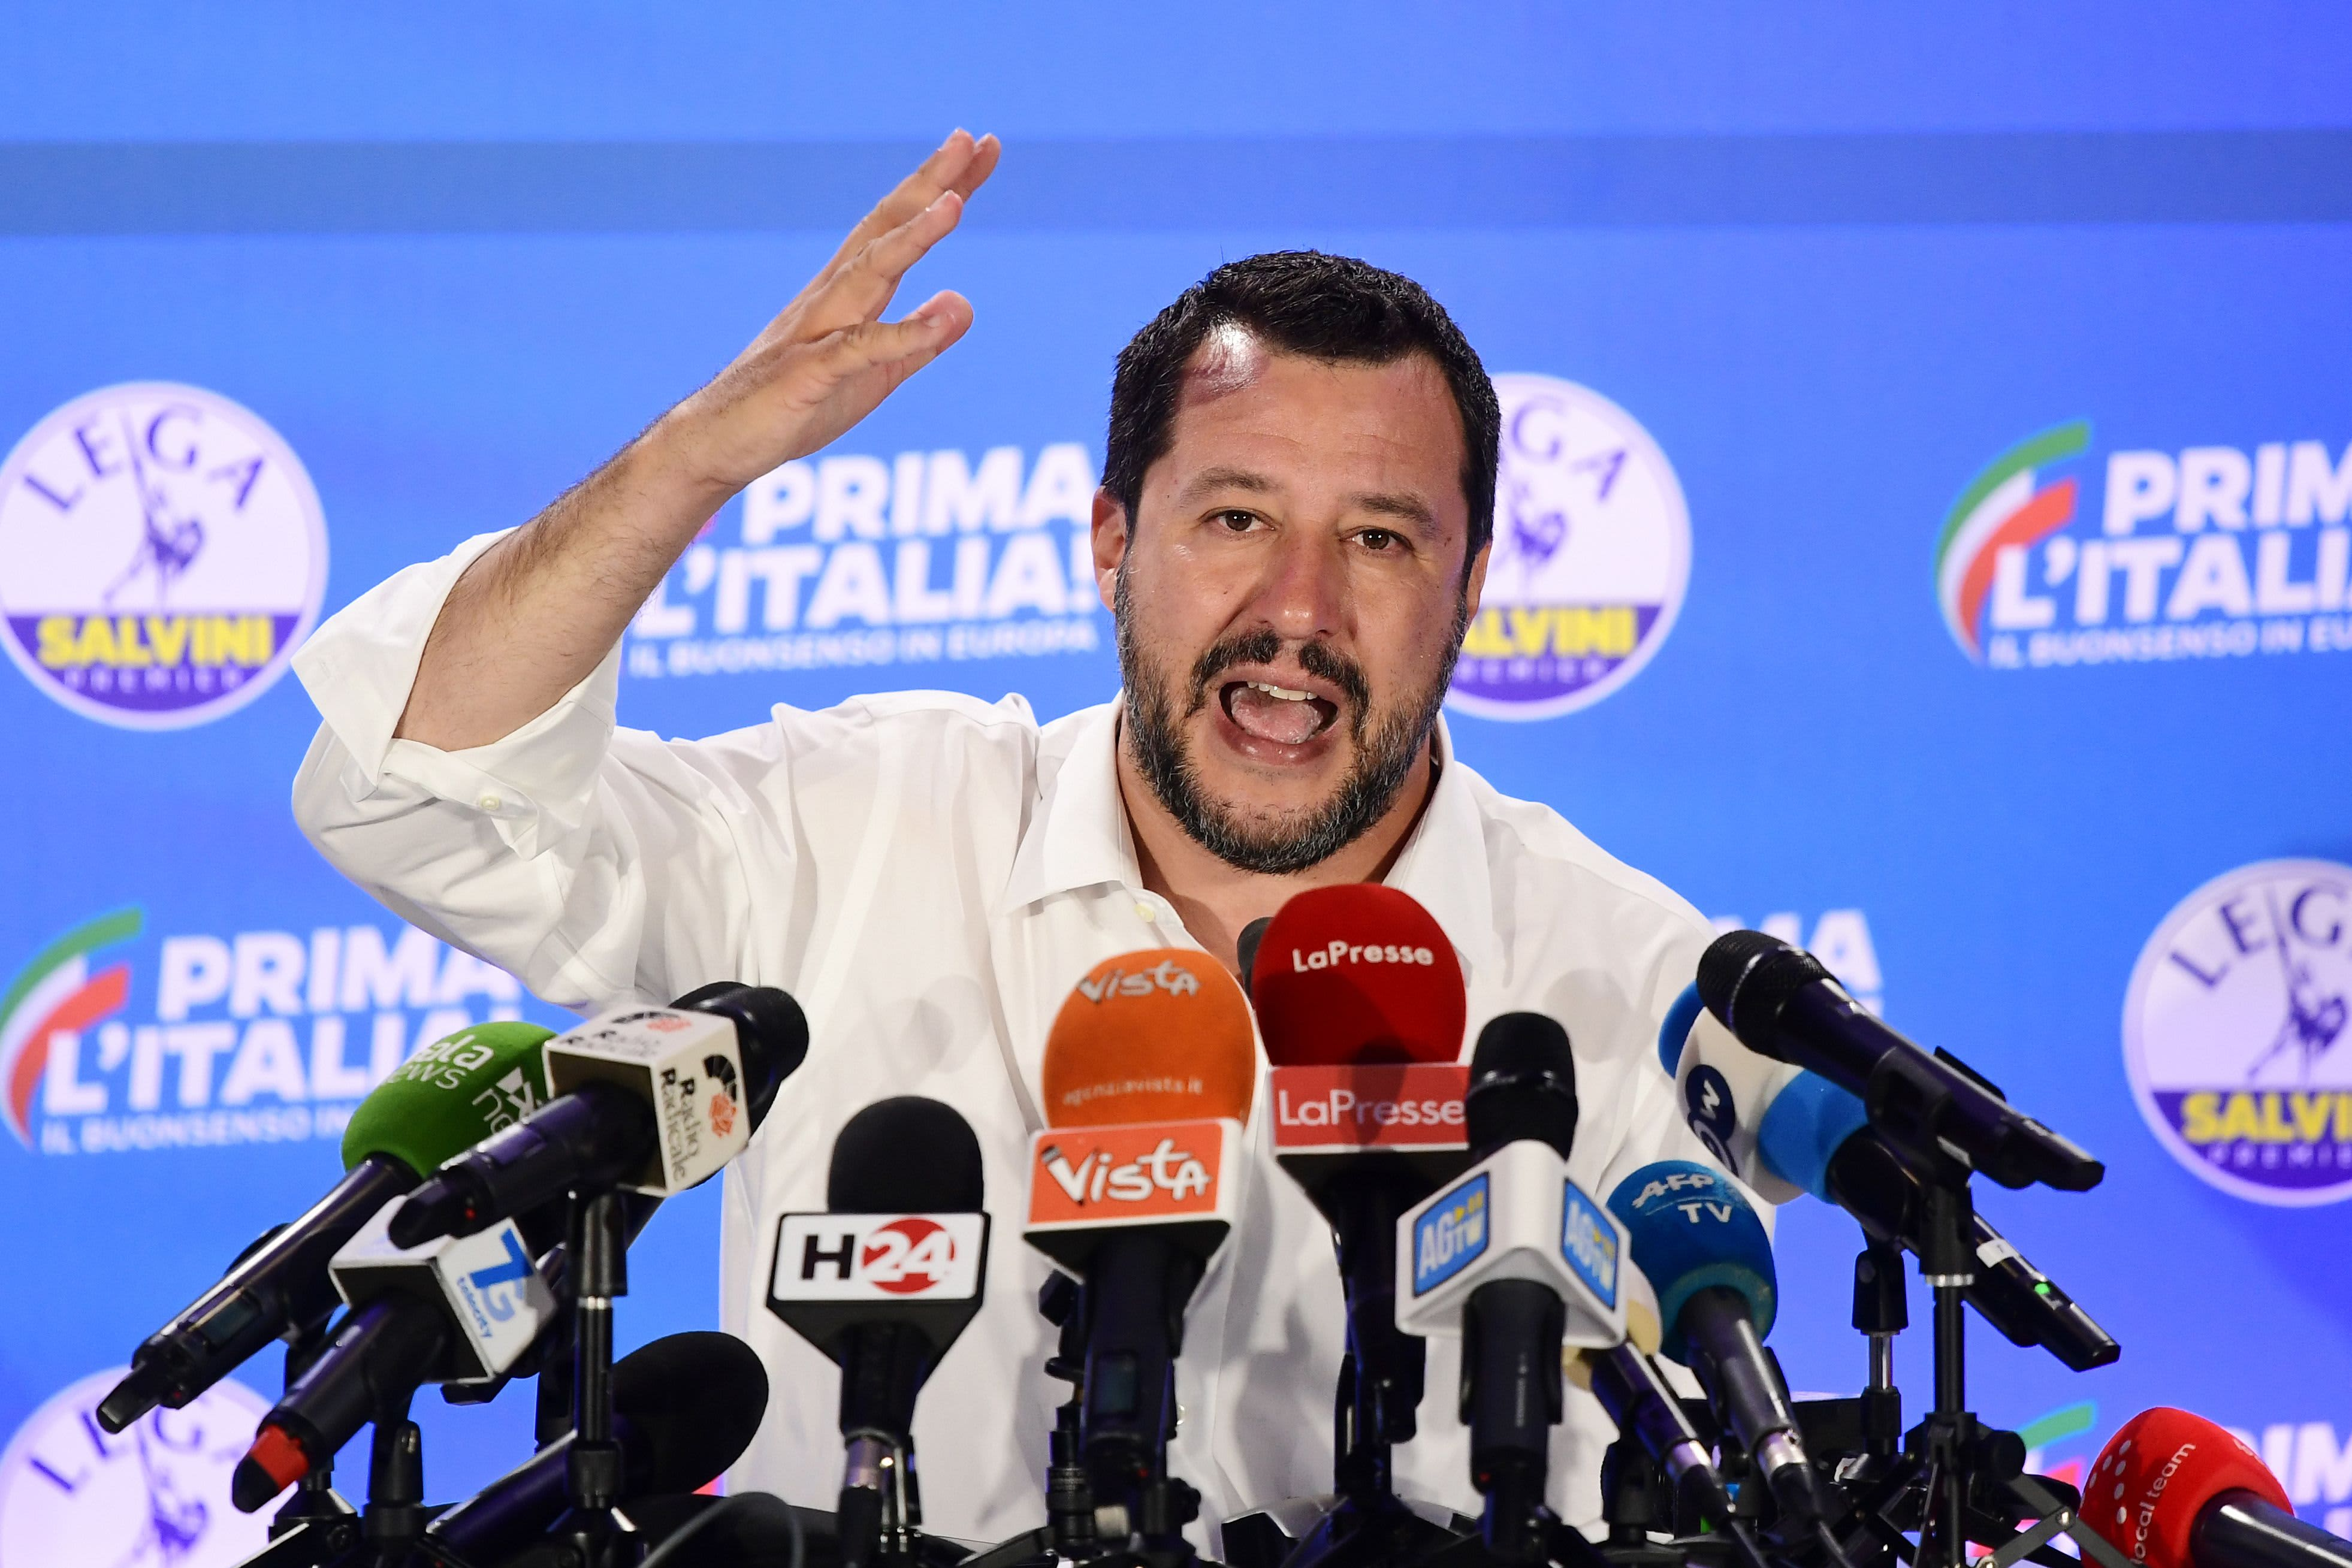 Italy's government is still weak, despite election blow to rival Salvini